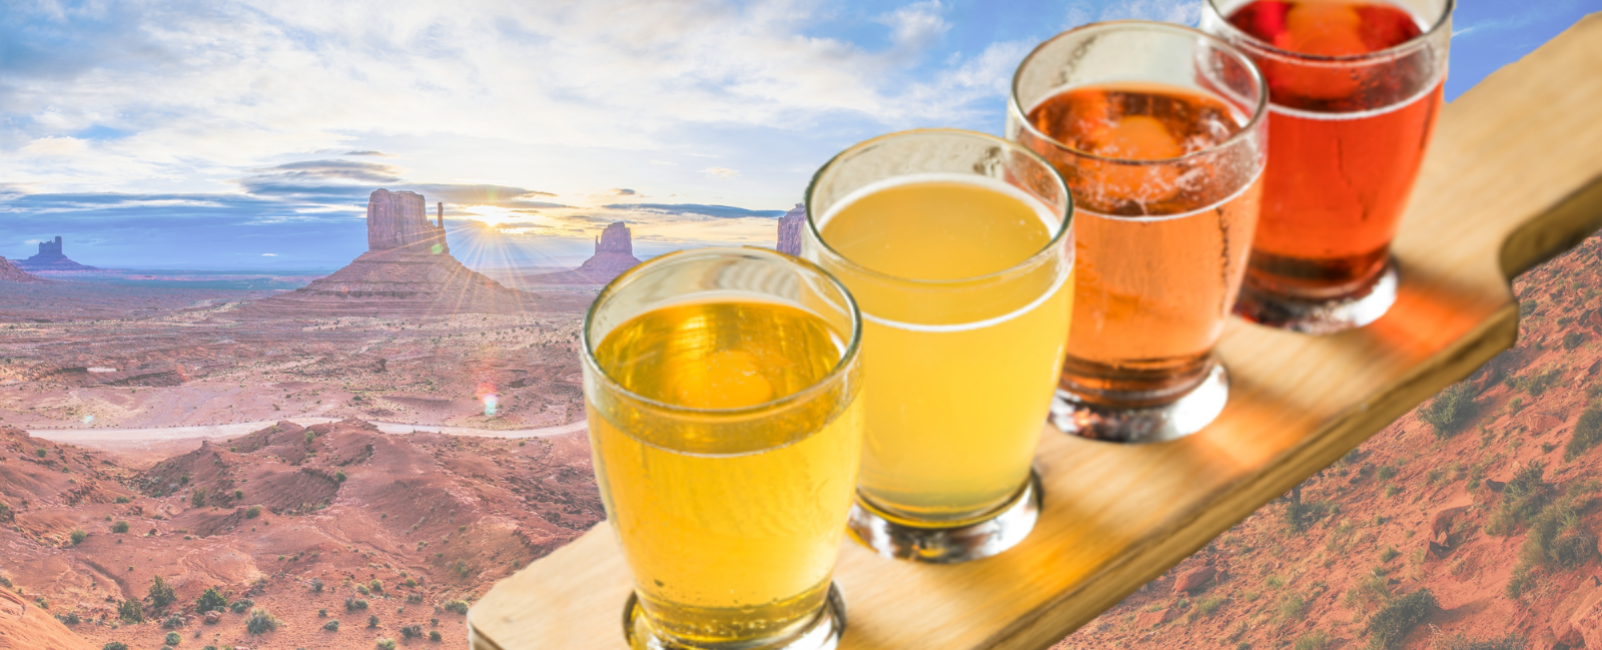 The Utah Beverage Scene, Cider Stops & Our Newest Cidery